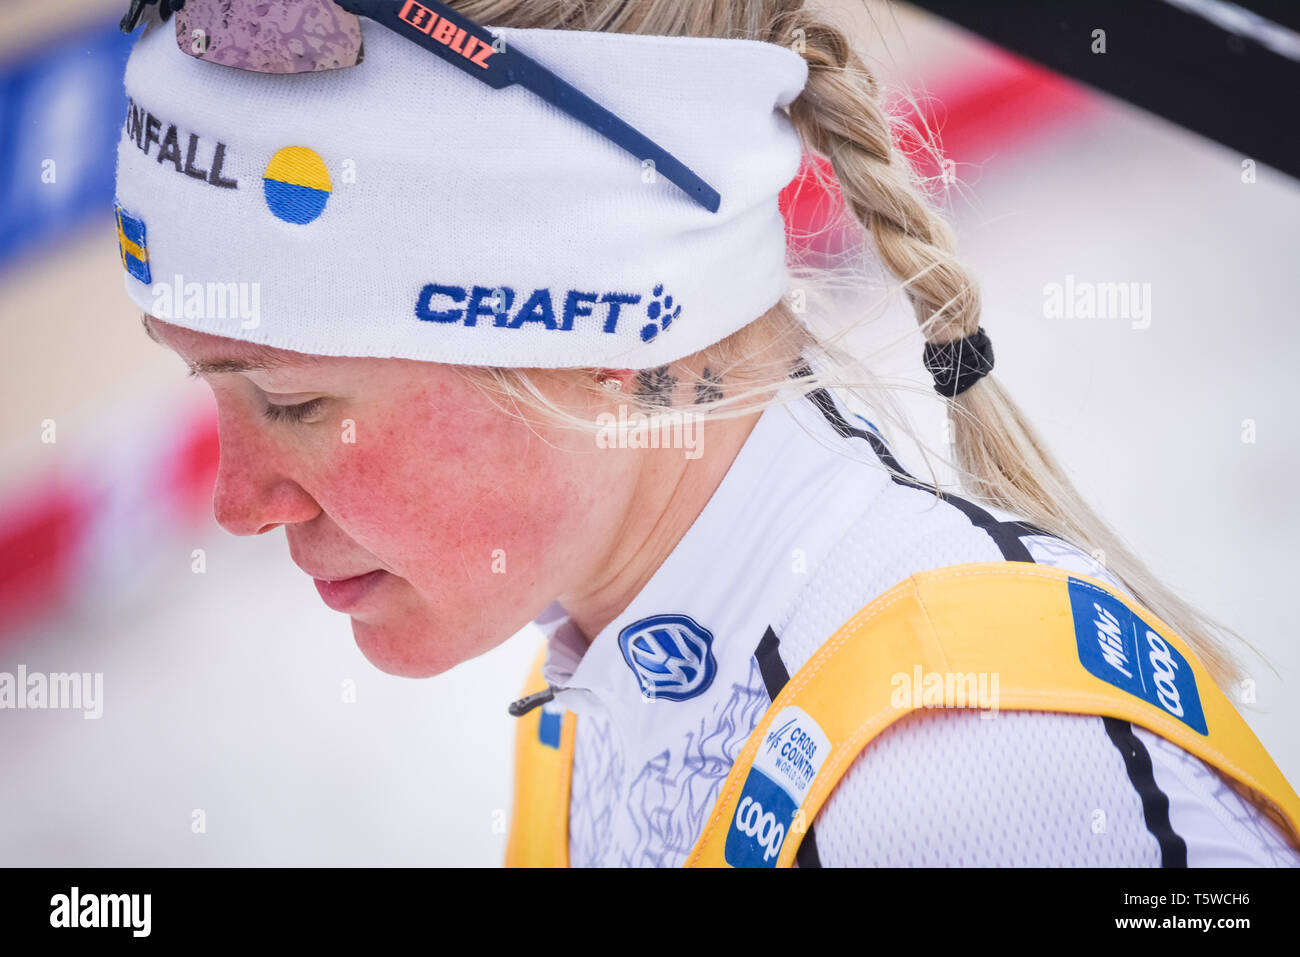 Sweden's Jonna Sundling after competing in the women's 1.2-K sprint FIS World Cup cross country ski race, Quebec City, Canada, 2019. - Stock Image